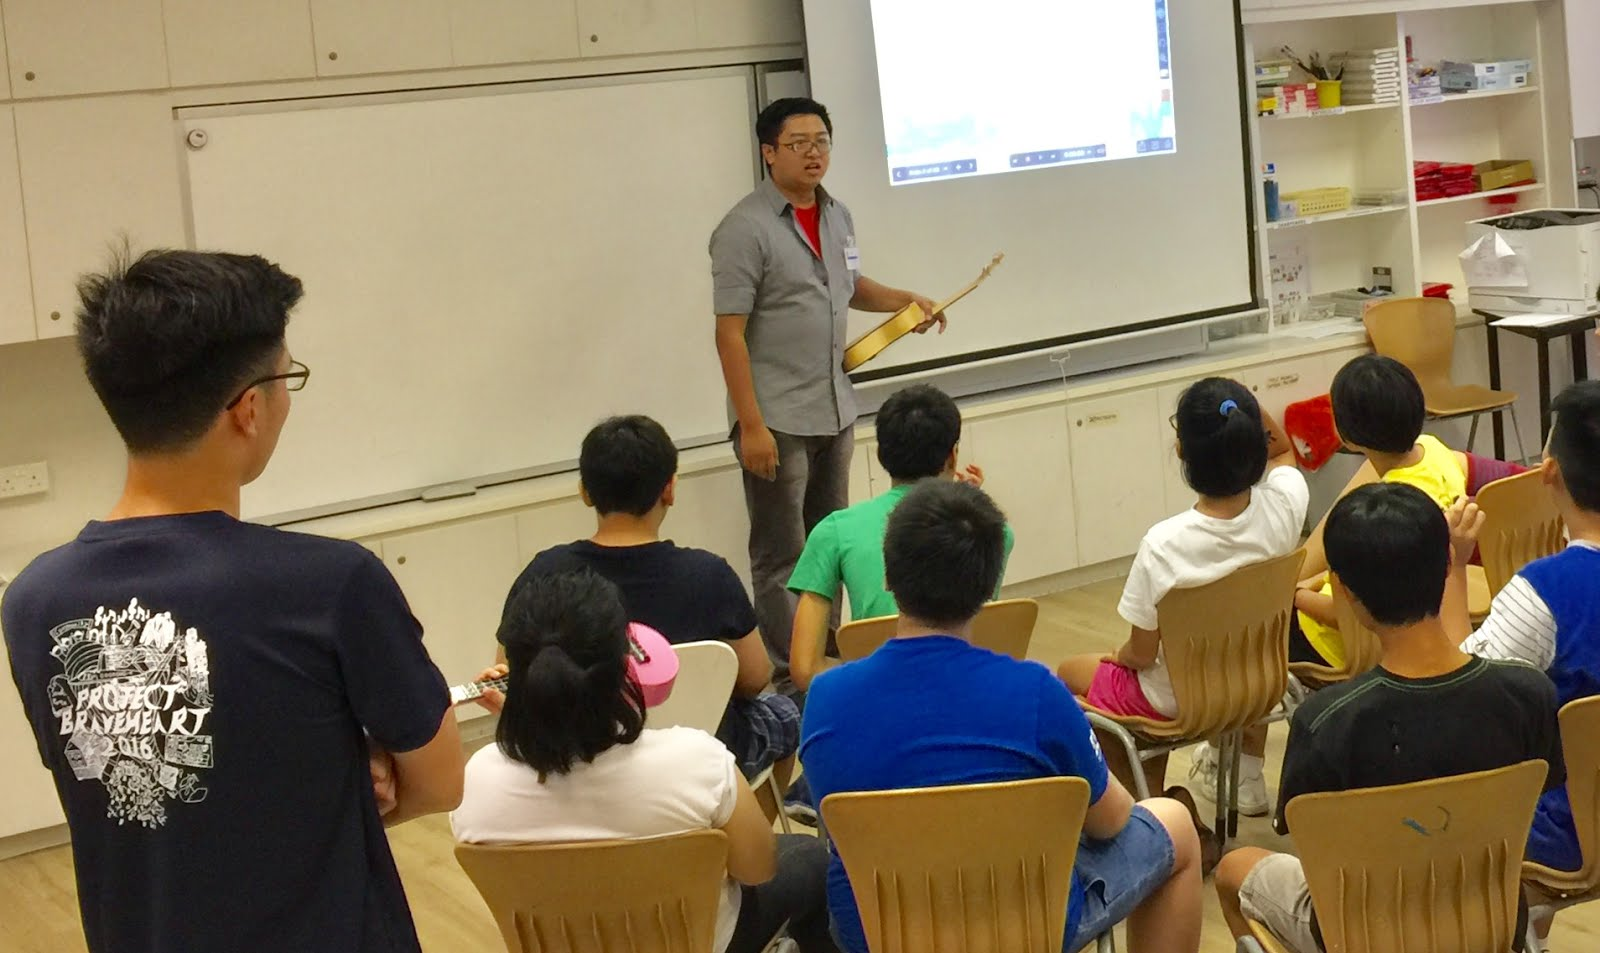 Intune Music Guitar Instructor Evan Liao Conducted A  Days Ukulele Workshop At Autism Resource Centre From  June To  June